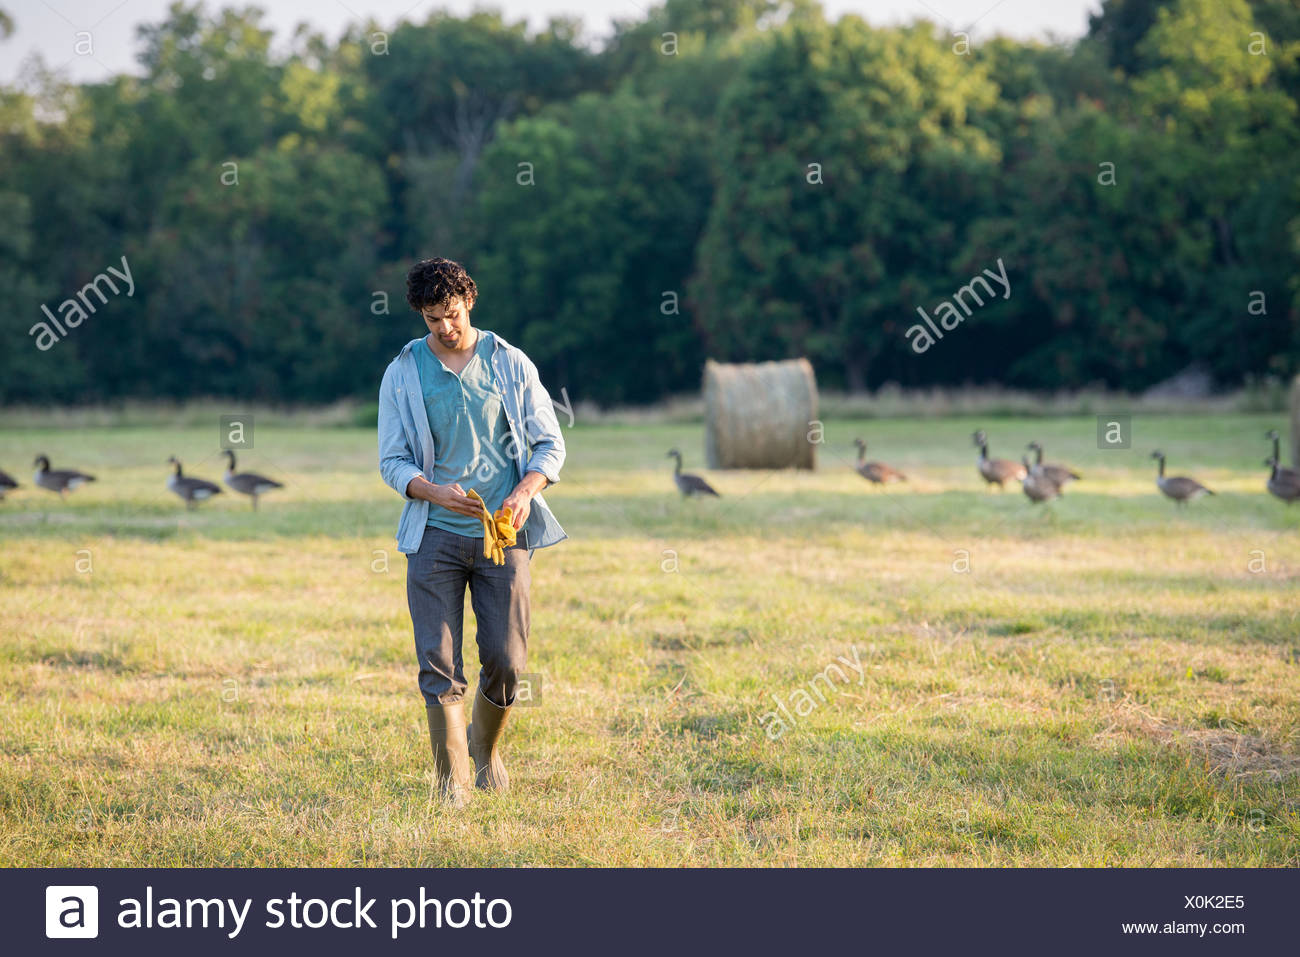 A man walking across a field, away from a flock of geese outdoors in the fresh air. - Stock Image